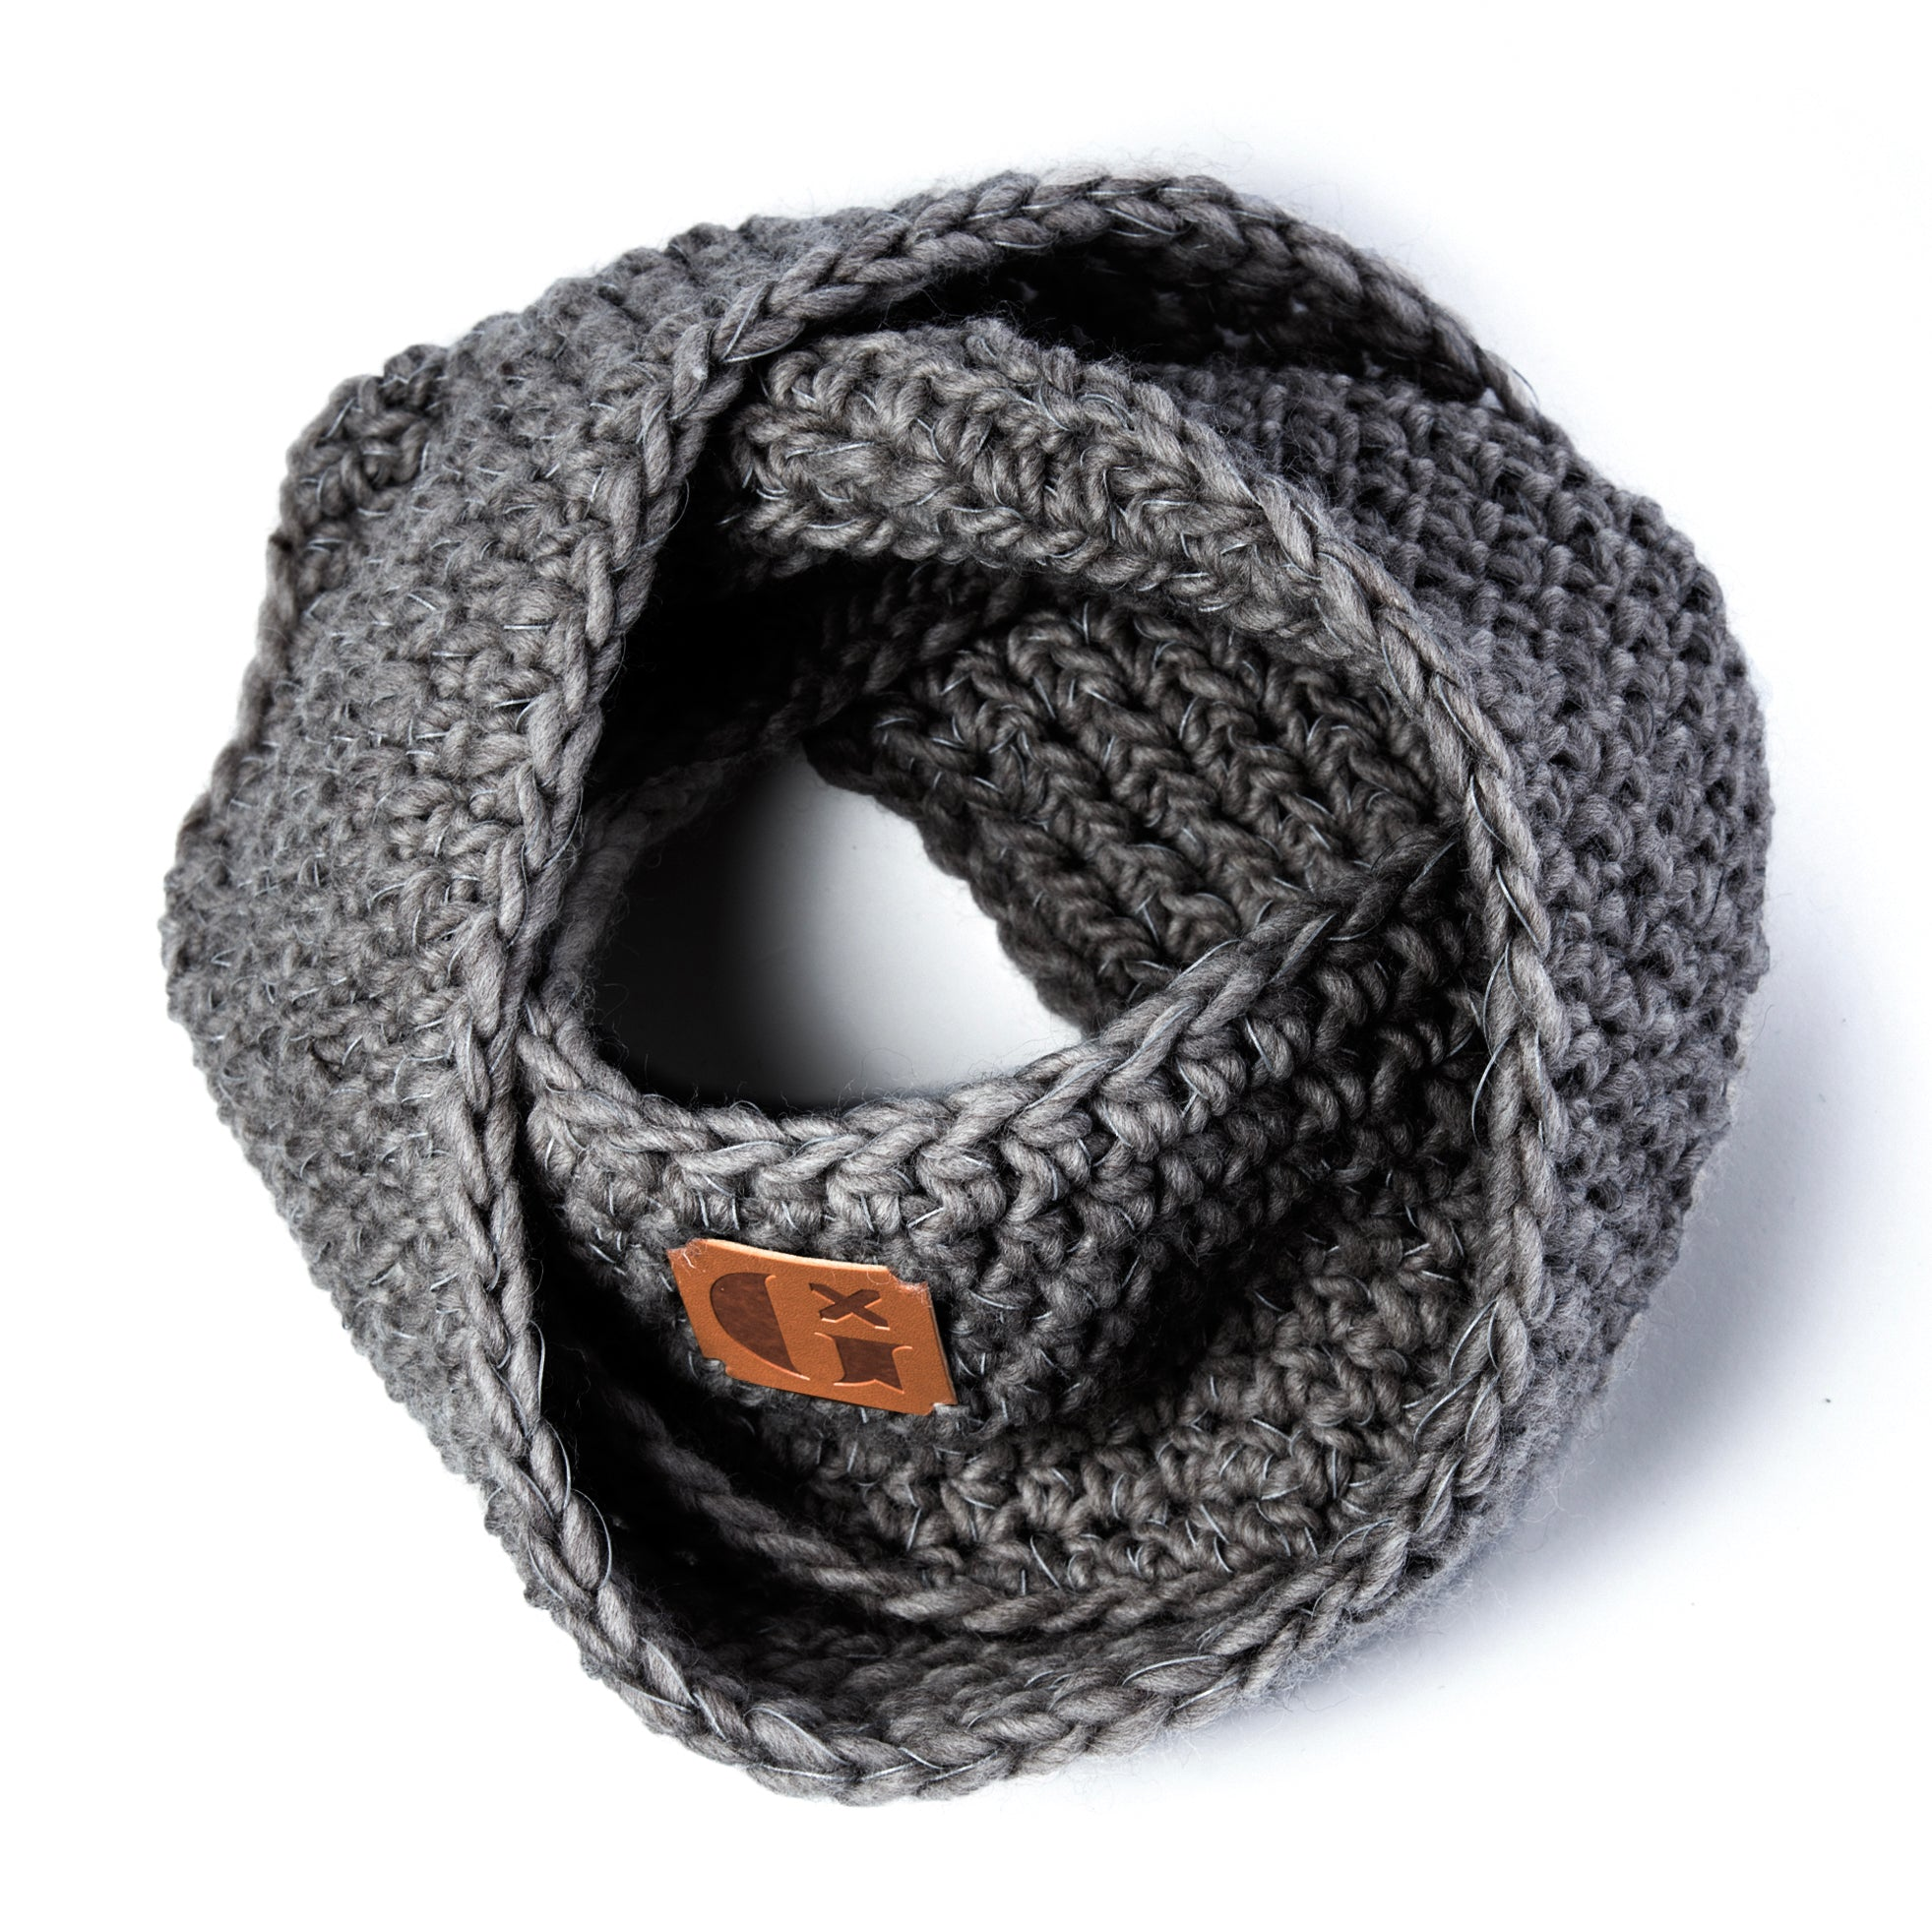 Hand-Knitted Light Reflective Twist Snood: Grey